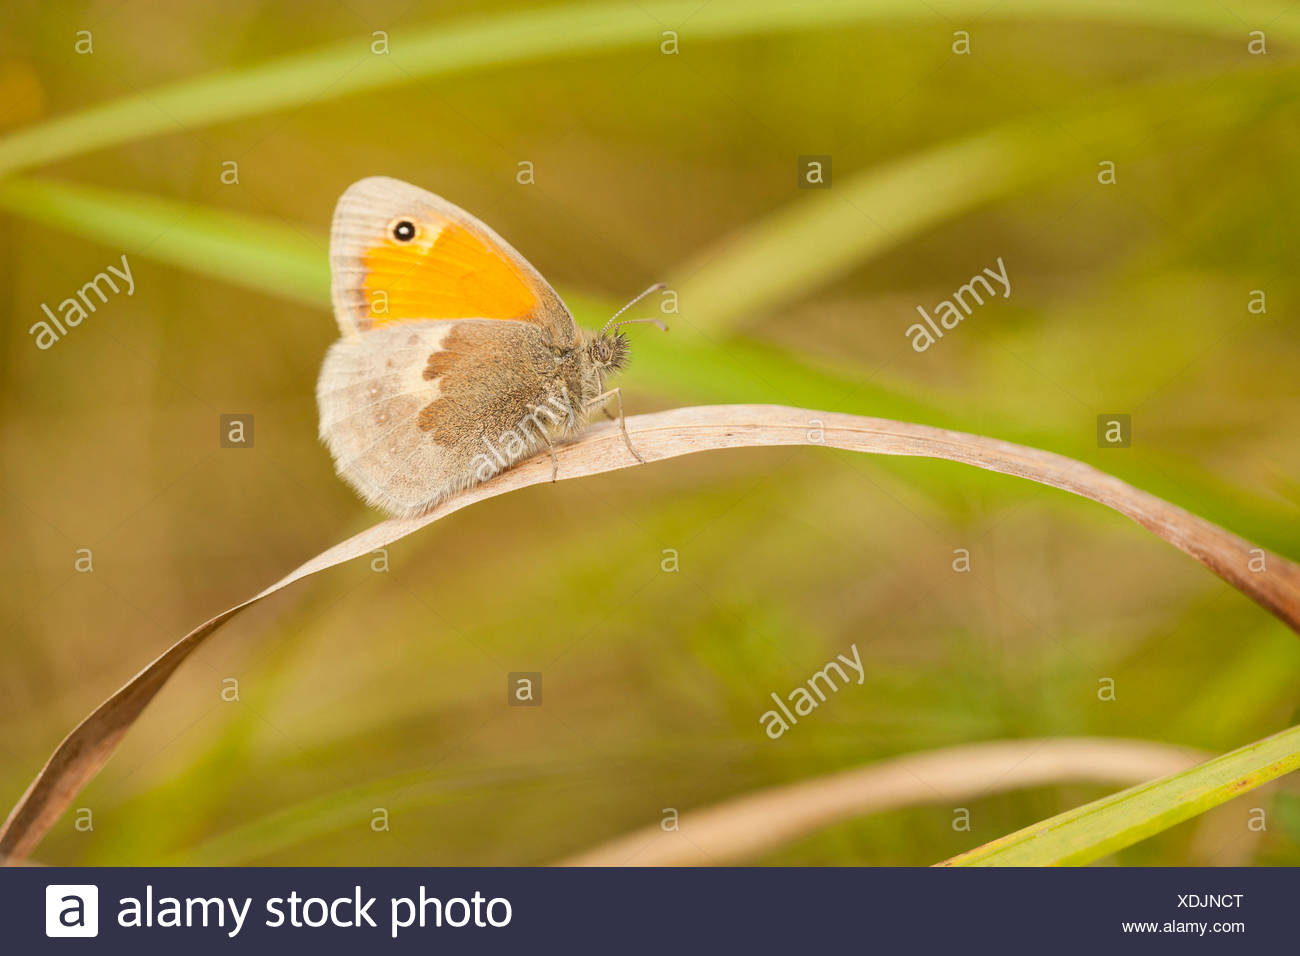 small heath (Coenonympha pamphilus), sitting on a blade of grass, Germany, Rhineland-Palatinate - Stock Image